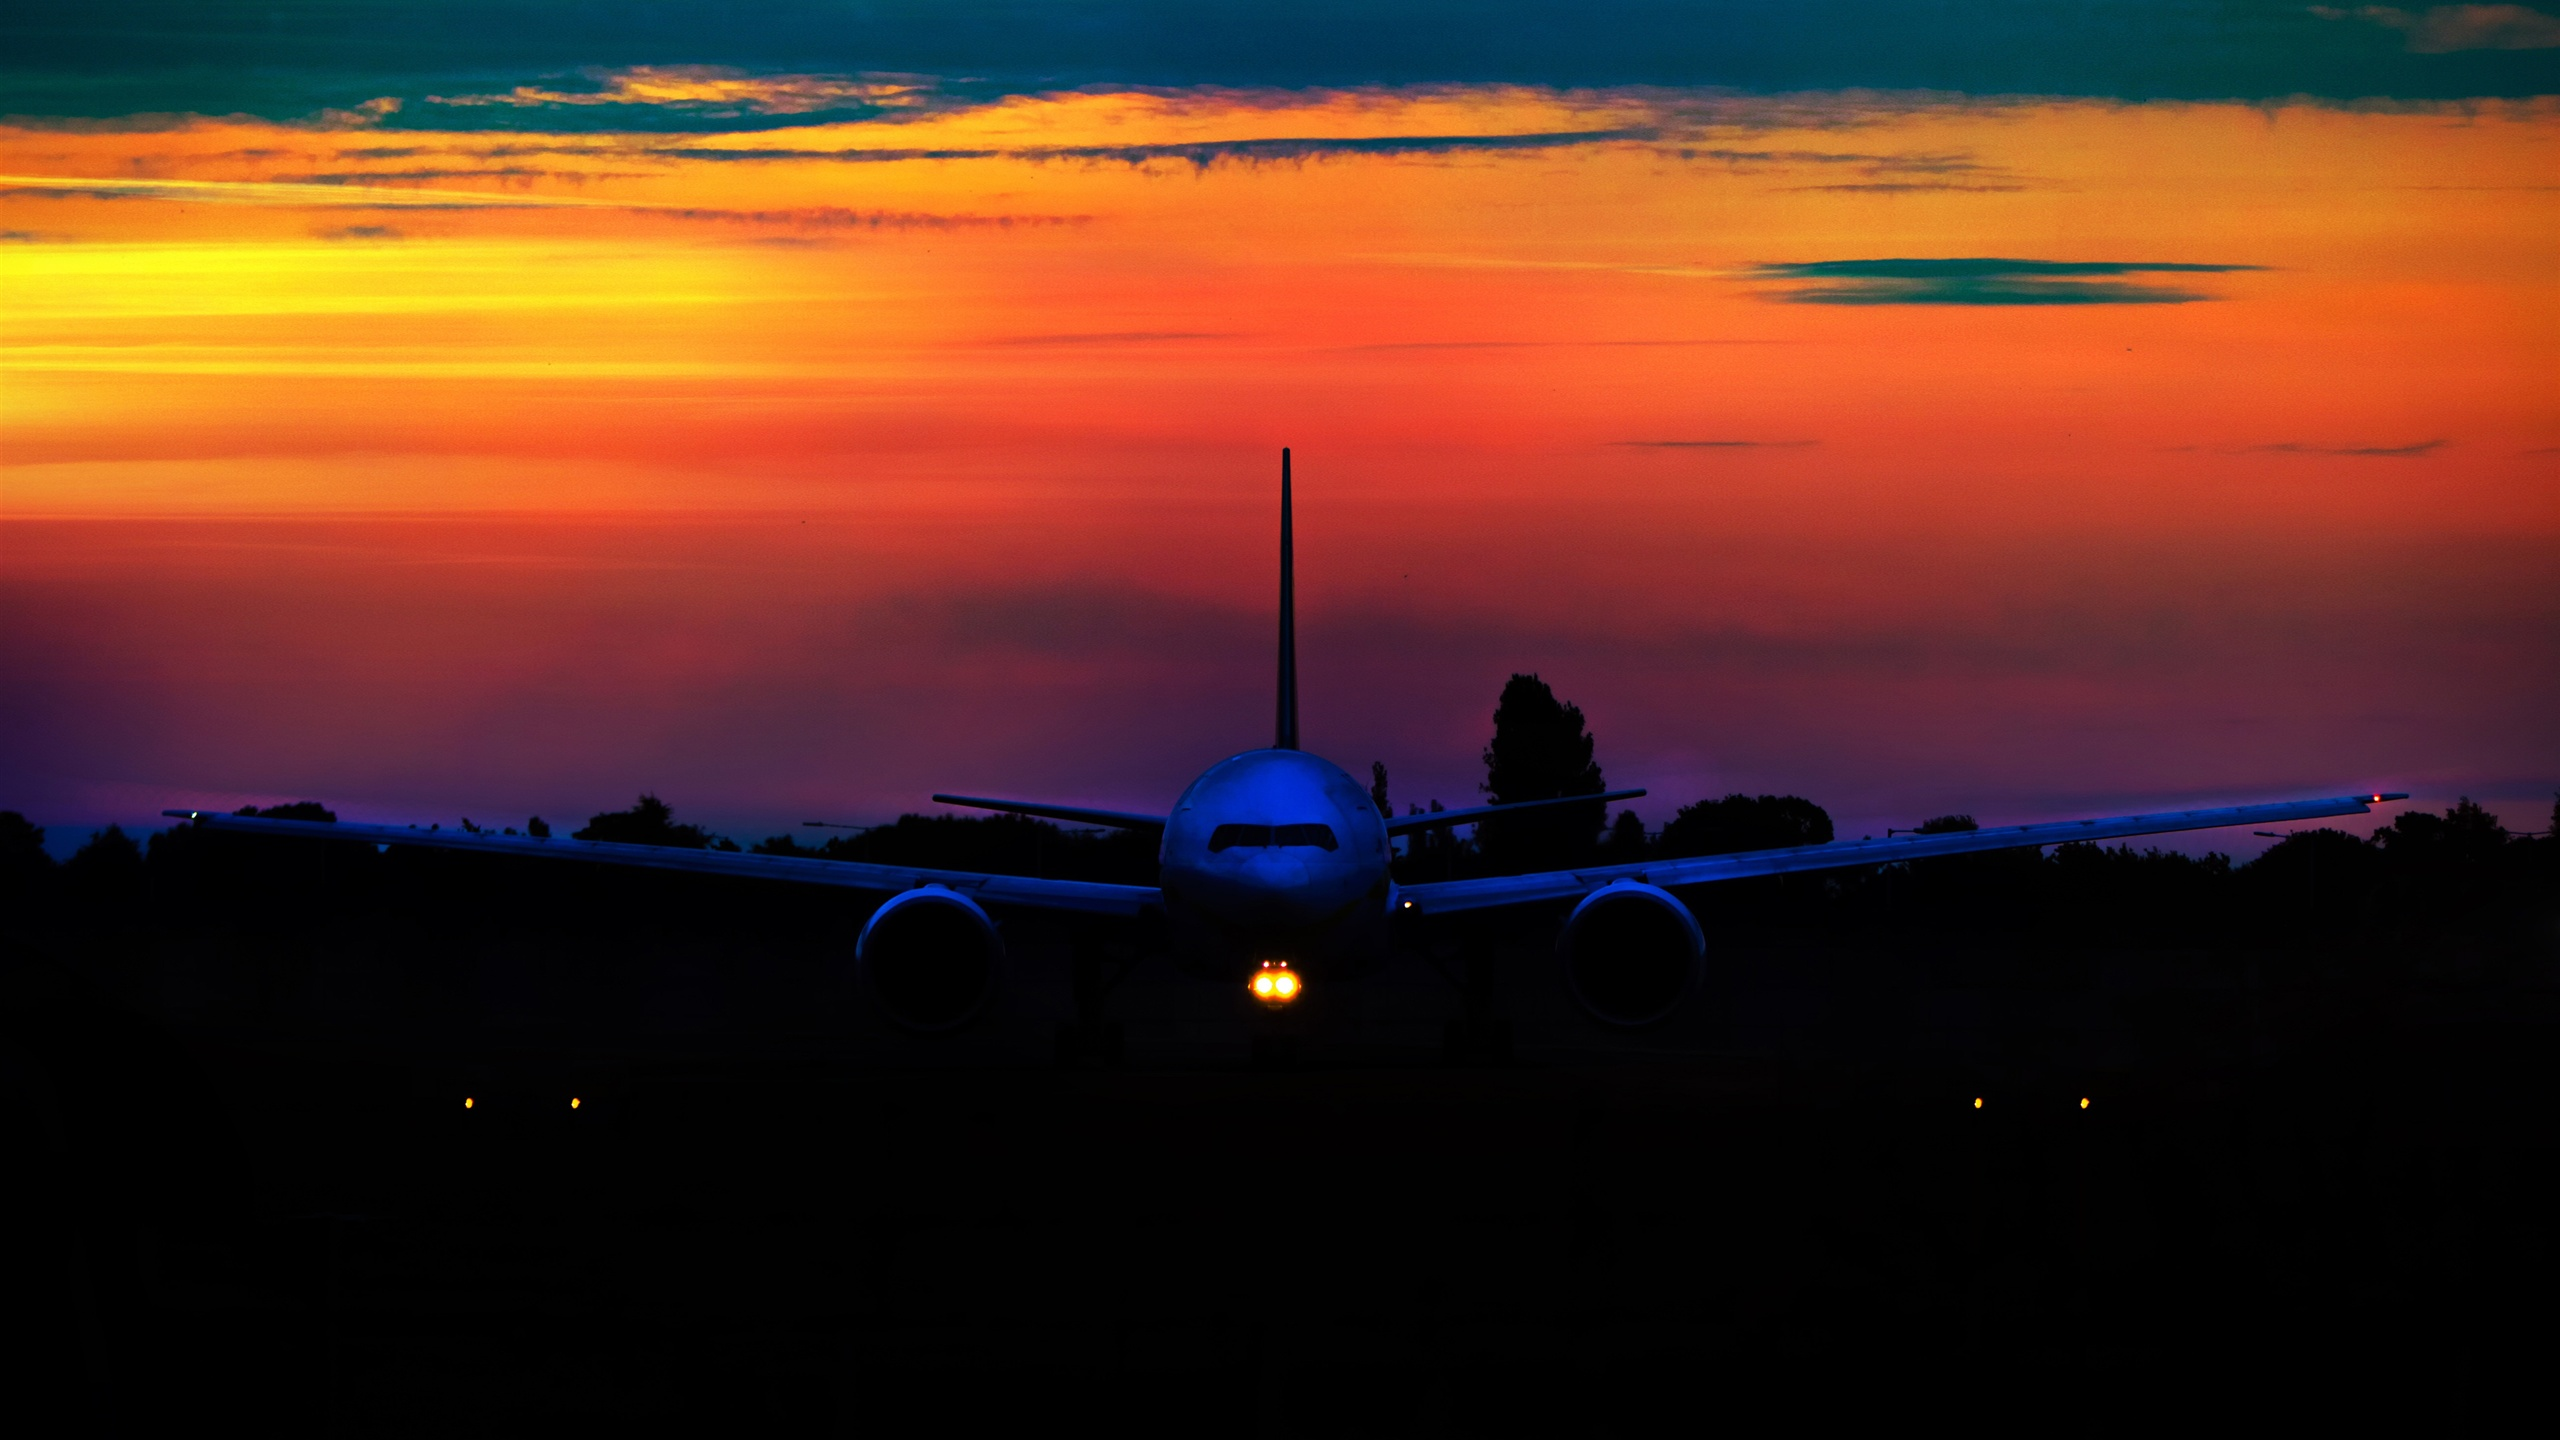 Good Wallpaper Night Airplane - Airplane-at-sunset-front-view-night_2560x1440  Gallery.jpg